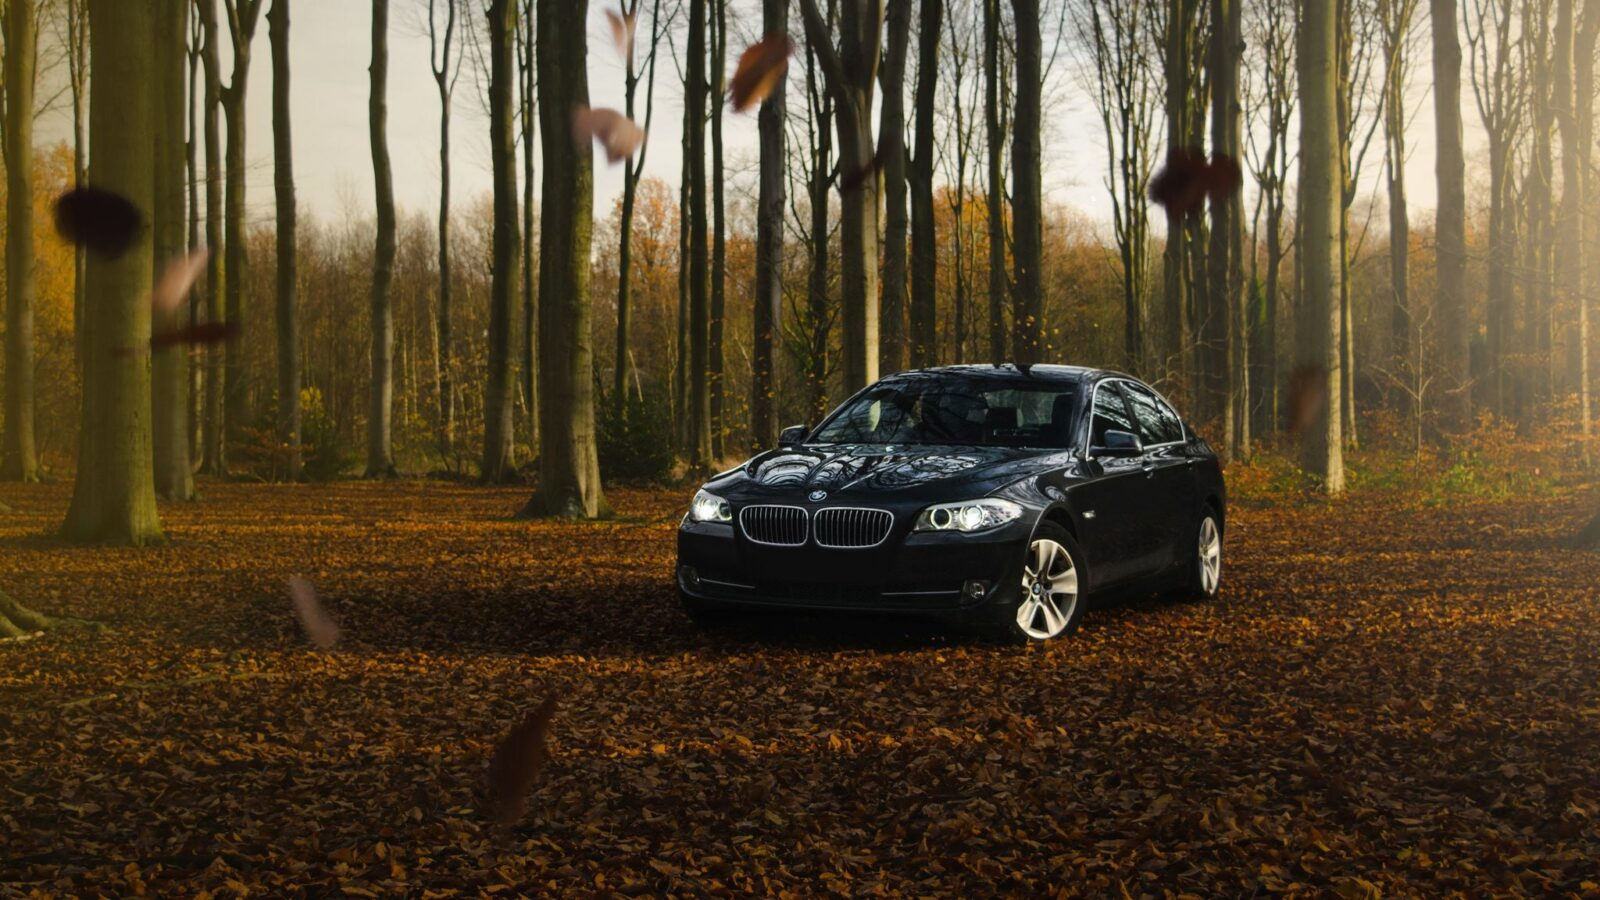 36 Bmw M5 F10 Wallpapers Hd High Quality Download